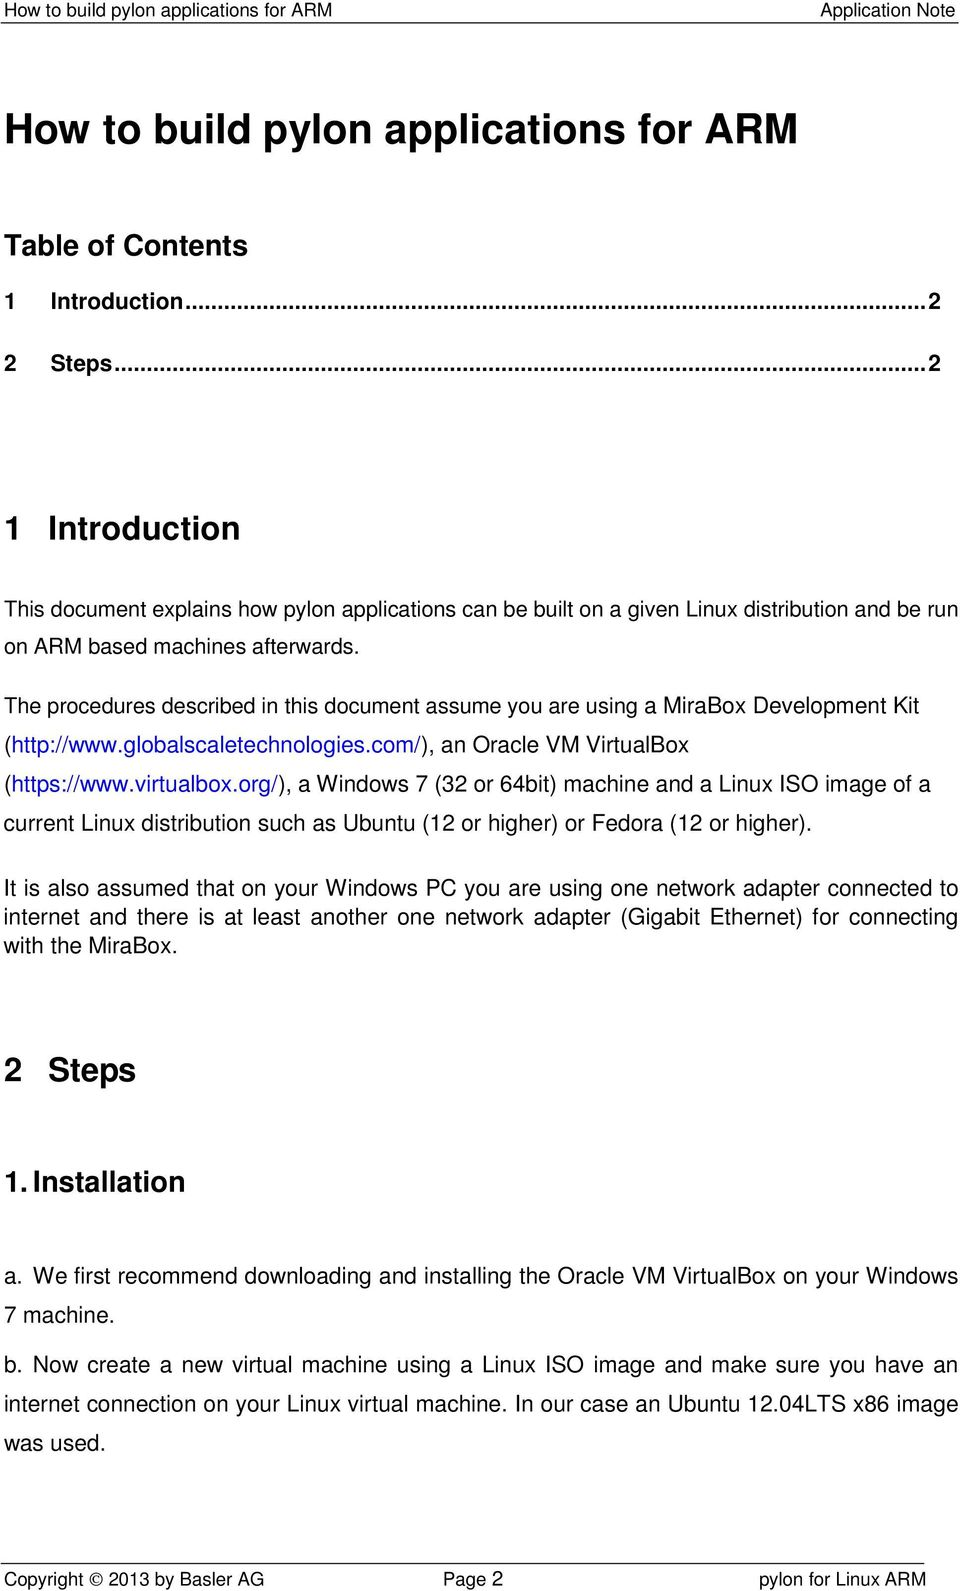 The procedures described in this document assume you are using a MiraBox Development Kit (http://www.globalscaletechnologies.com/), an Oracle VM VirtualBox (https://www.virtualbox.